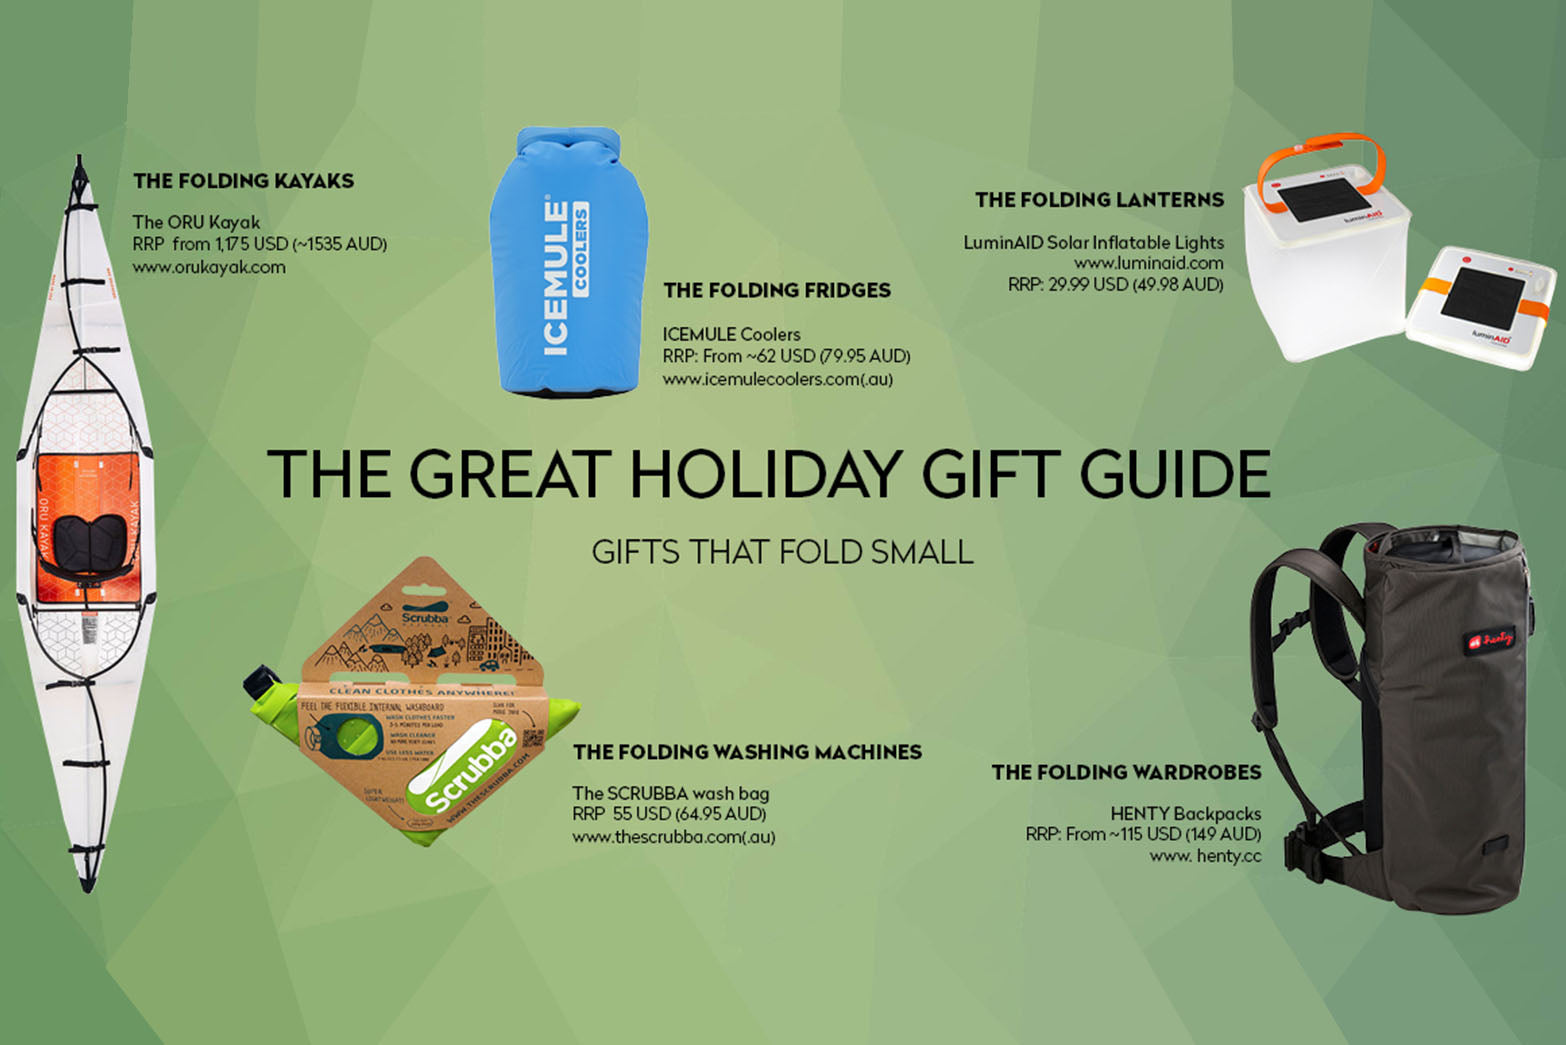 Top 5 Best Gifts for Travelers and Campers